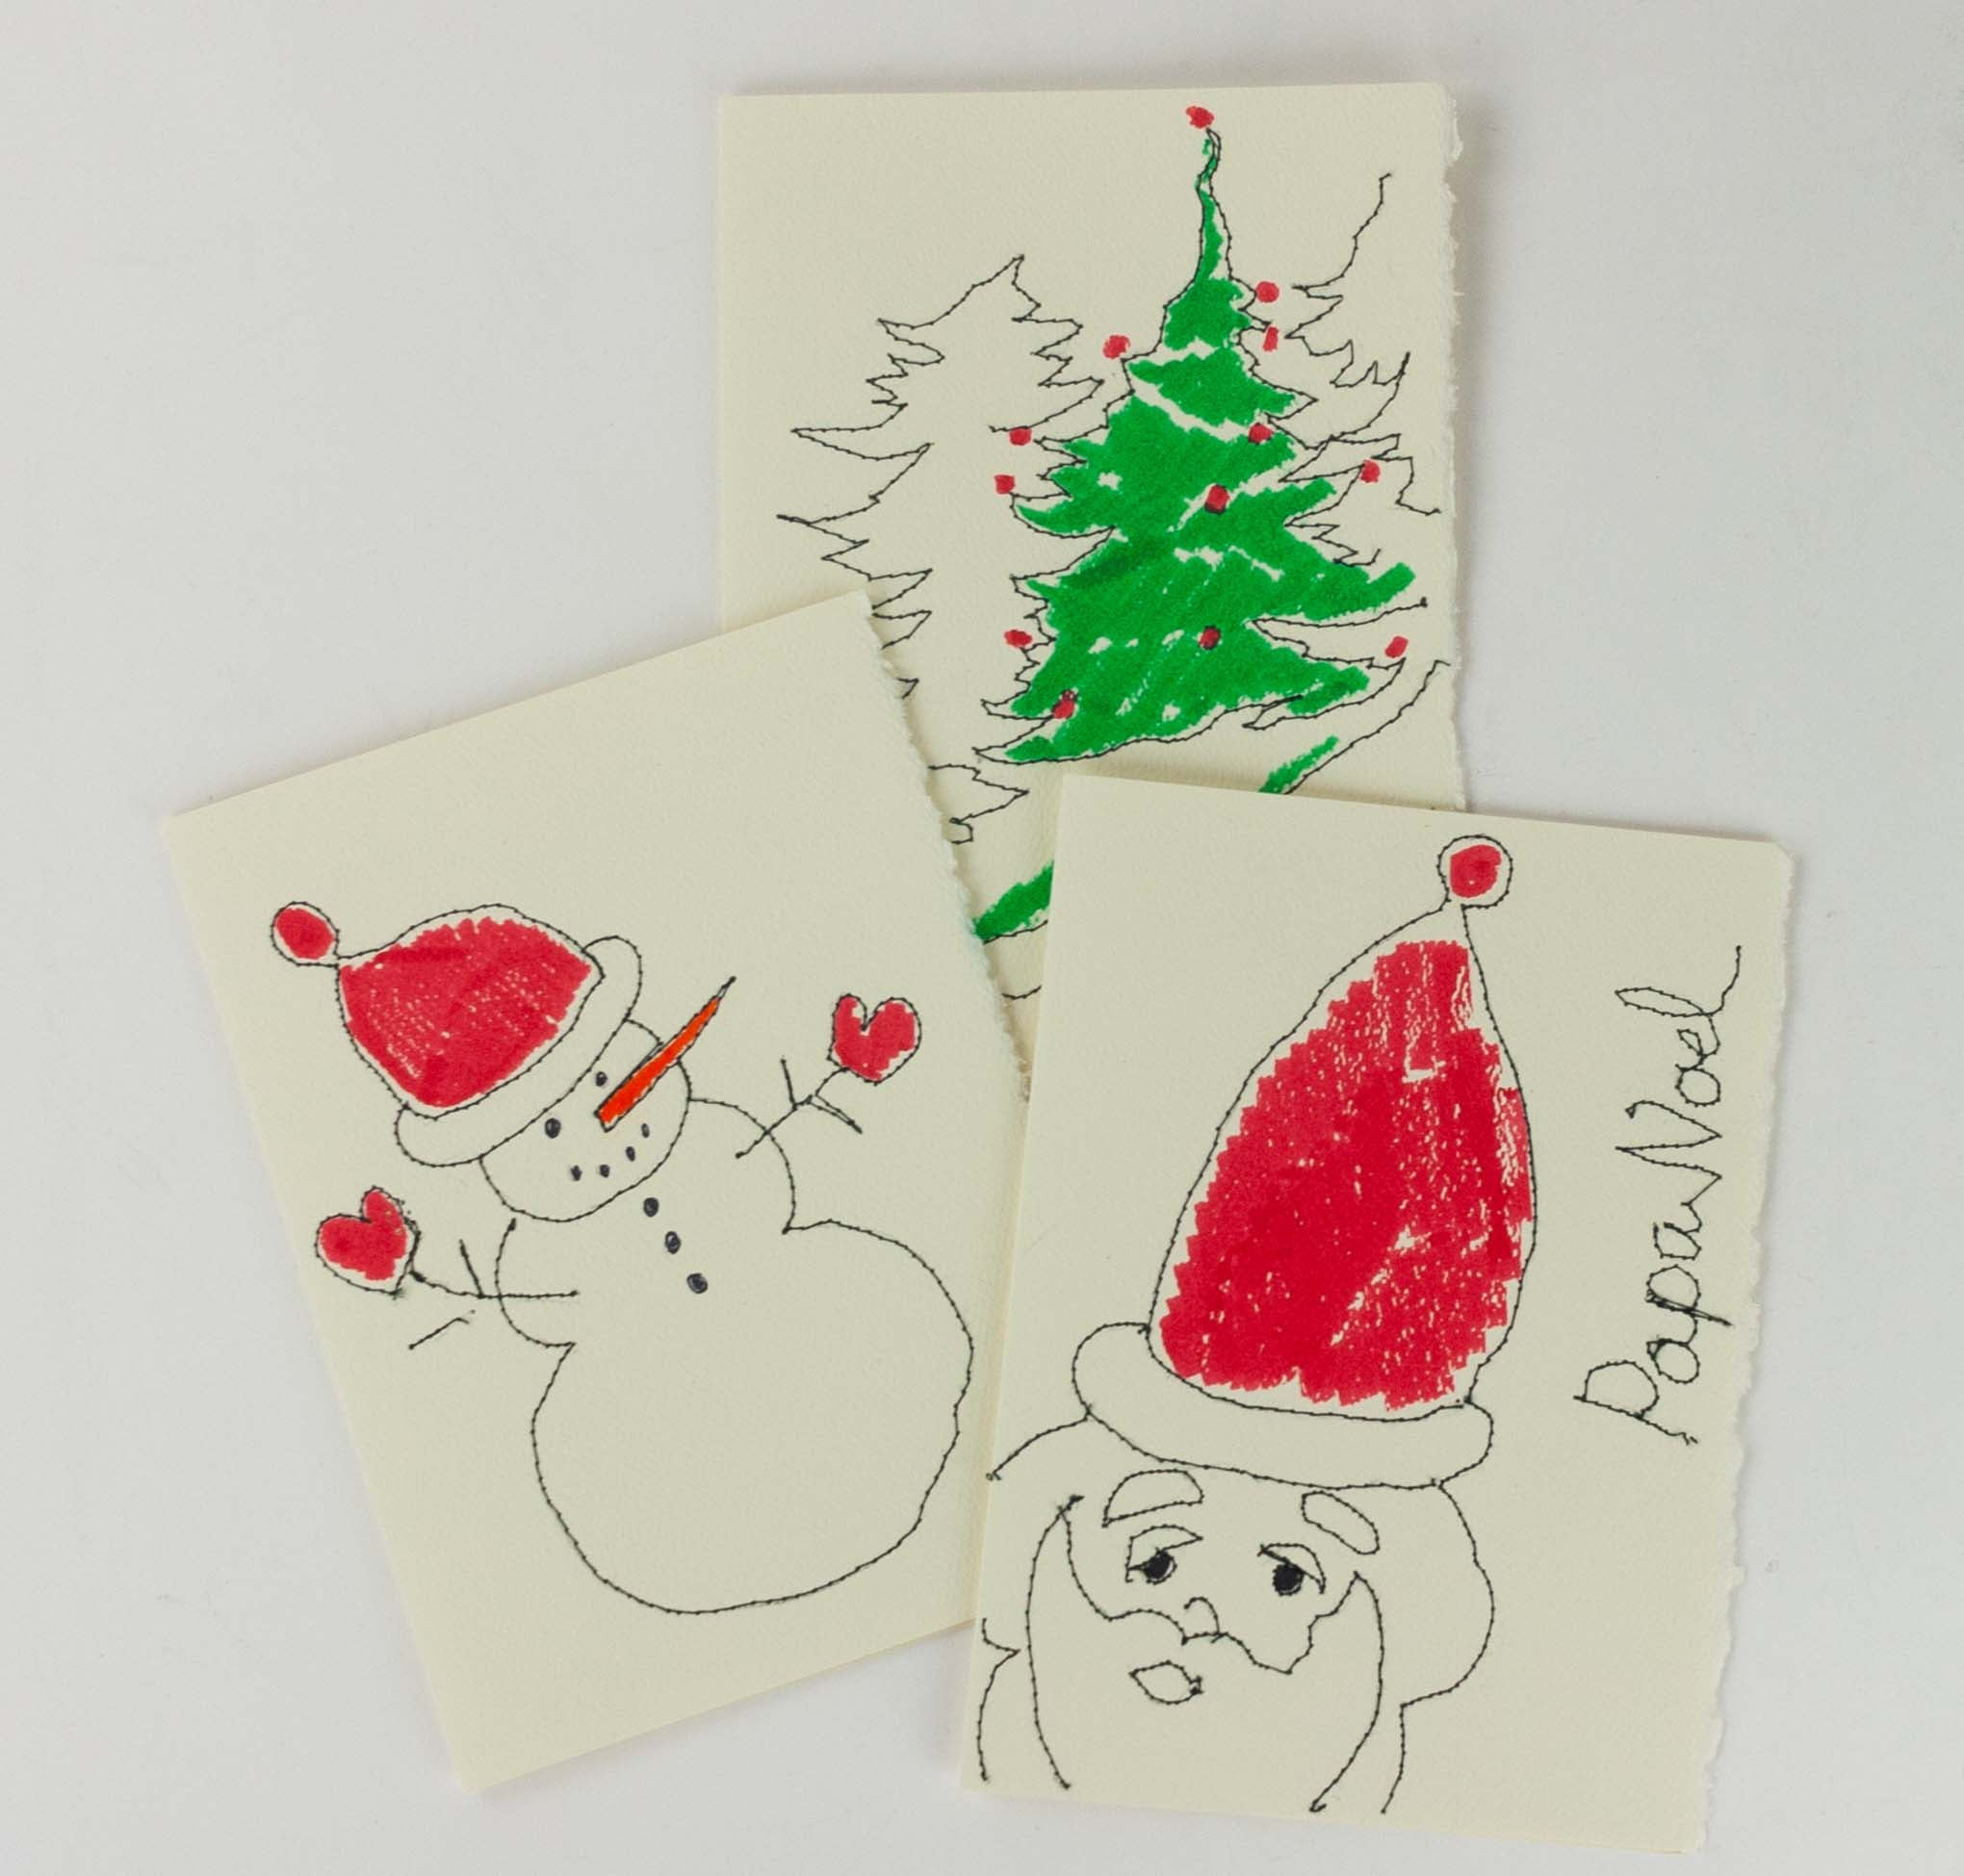 handmade christmas cards stitched and painted the art shop at moore handmade christmas cards stitched and painted the art shop at moore